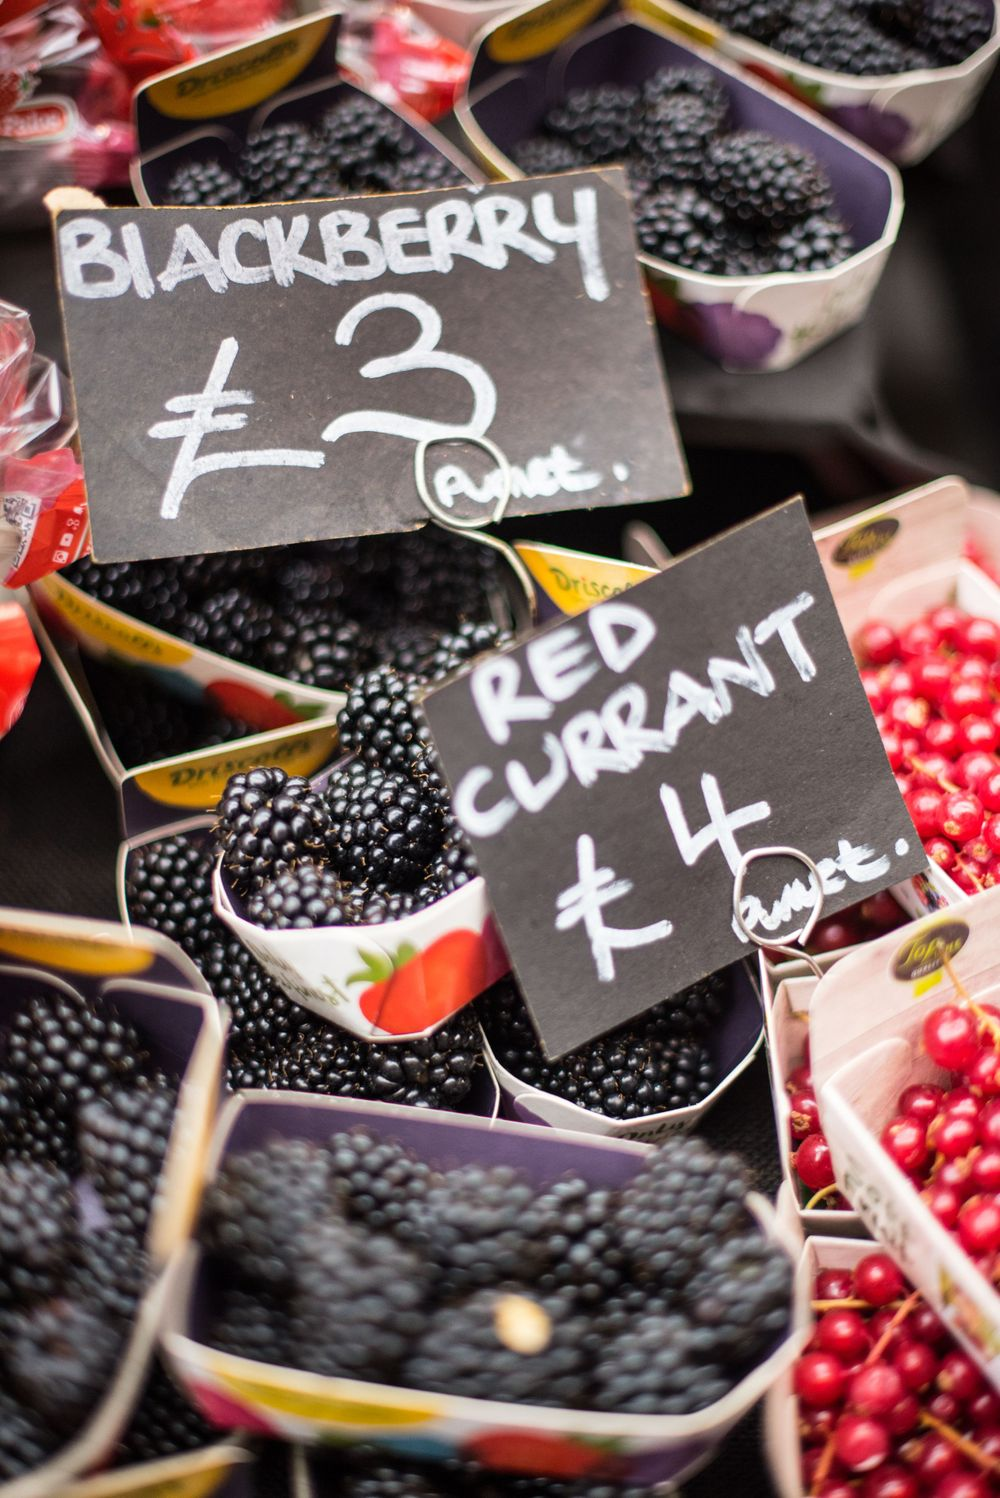 Blackberry and red currant display at Borough Market, London